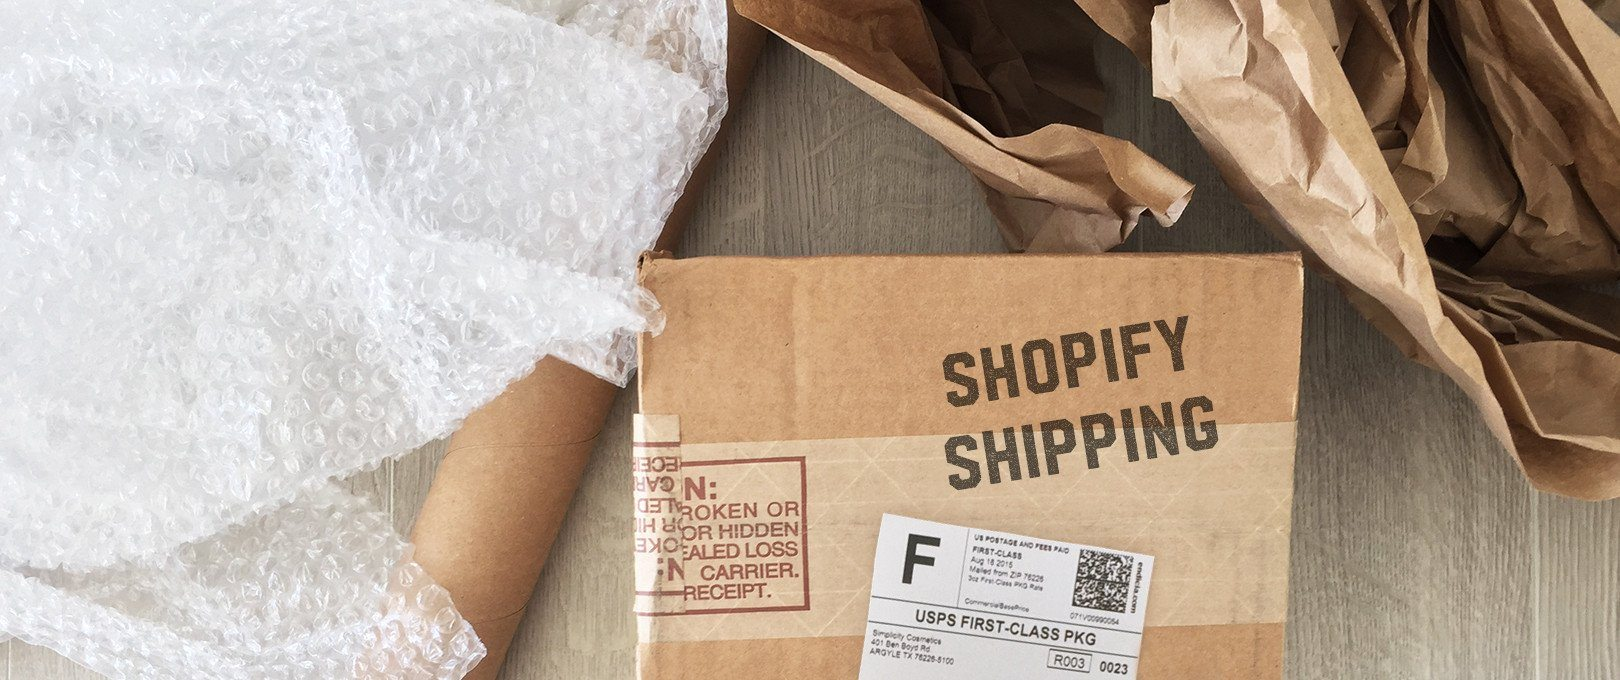 shopify fast shipping